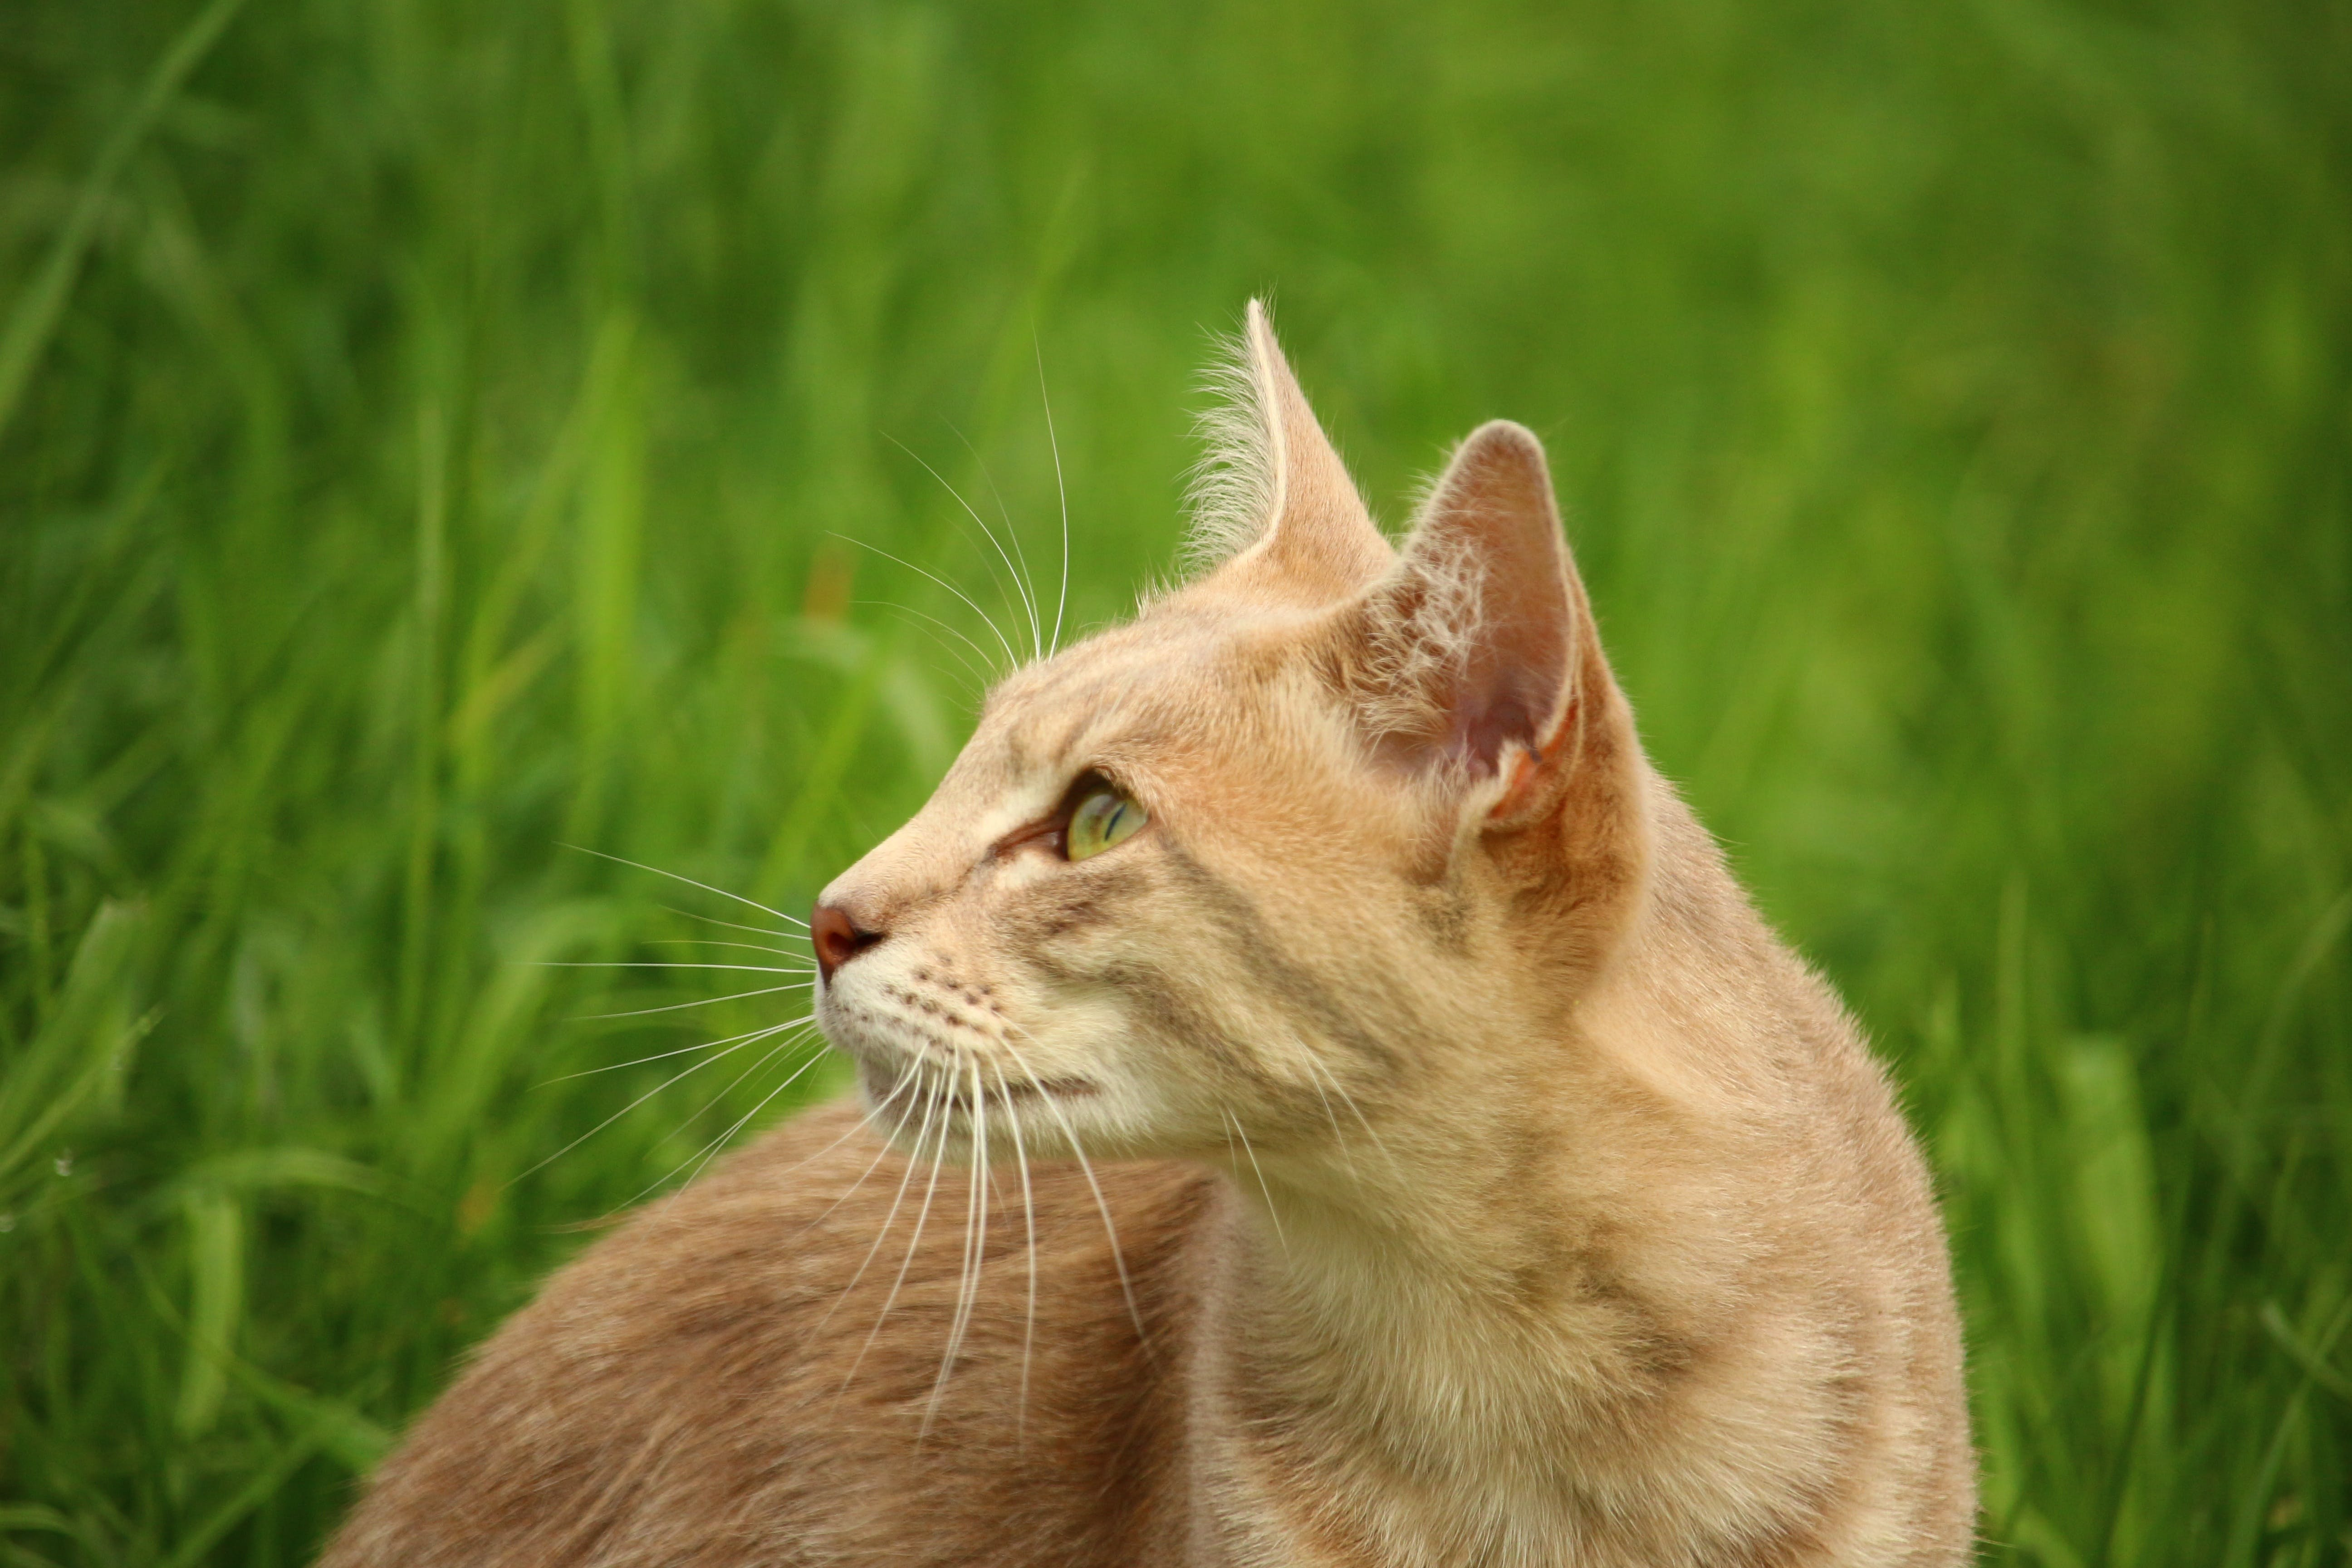 Tan Cat Beside Green Grass during Daytime